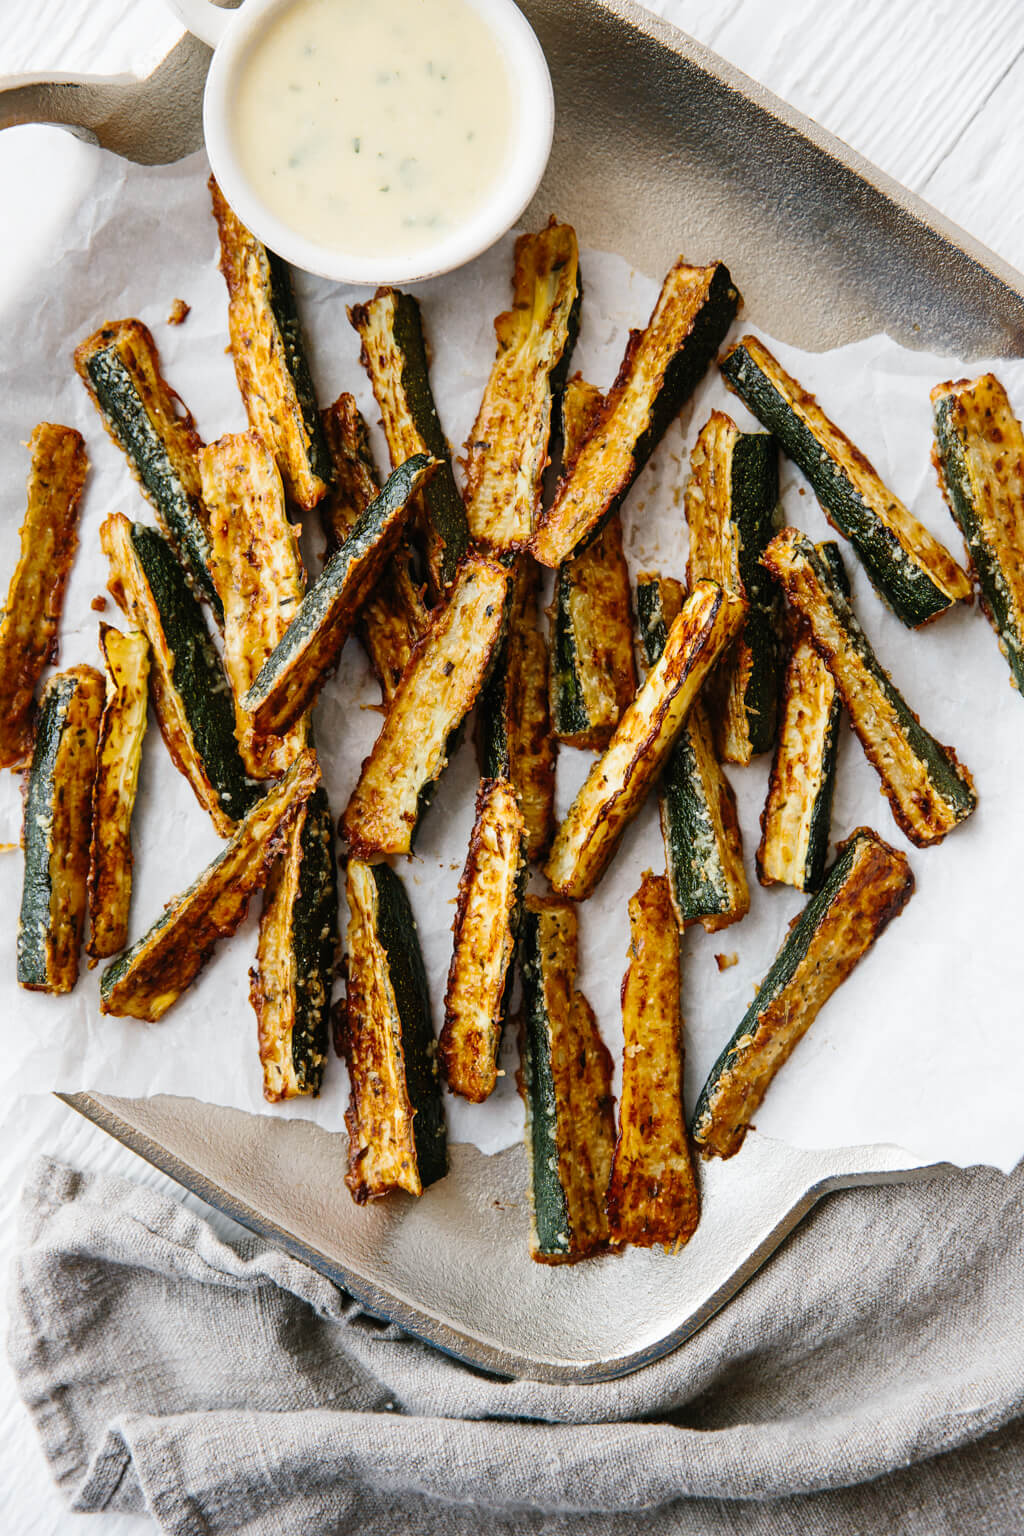 These baked zucchini fries are ultra cheesy and flavorful with freshly grated Parmesan cheese. They're also gluten-free, low-carb, paleo and keto-friendly for a delicious, healthy snack recipe.